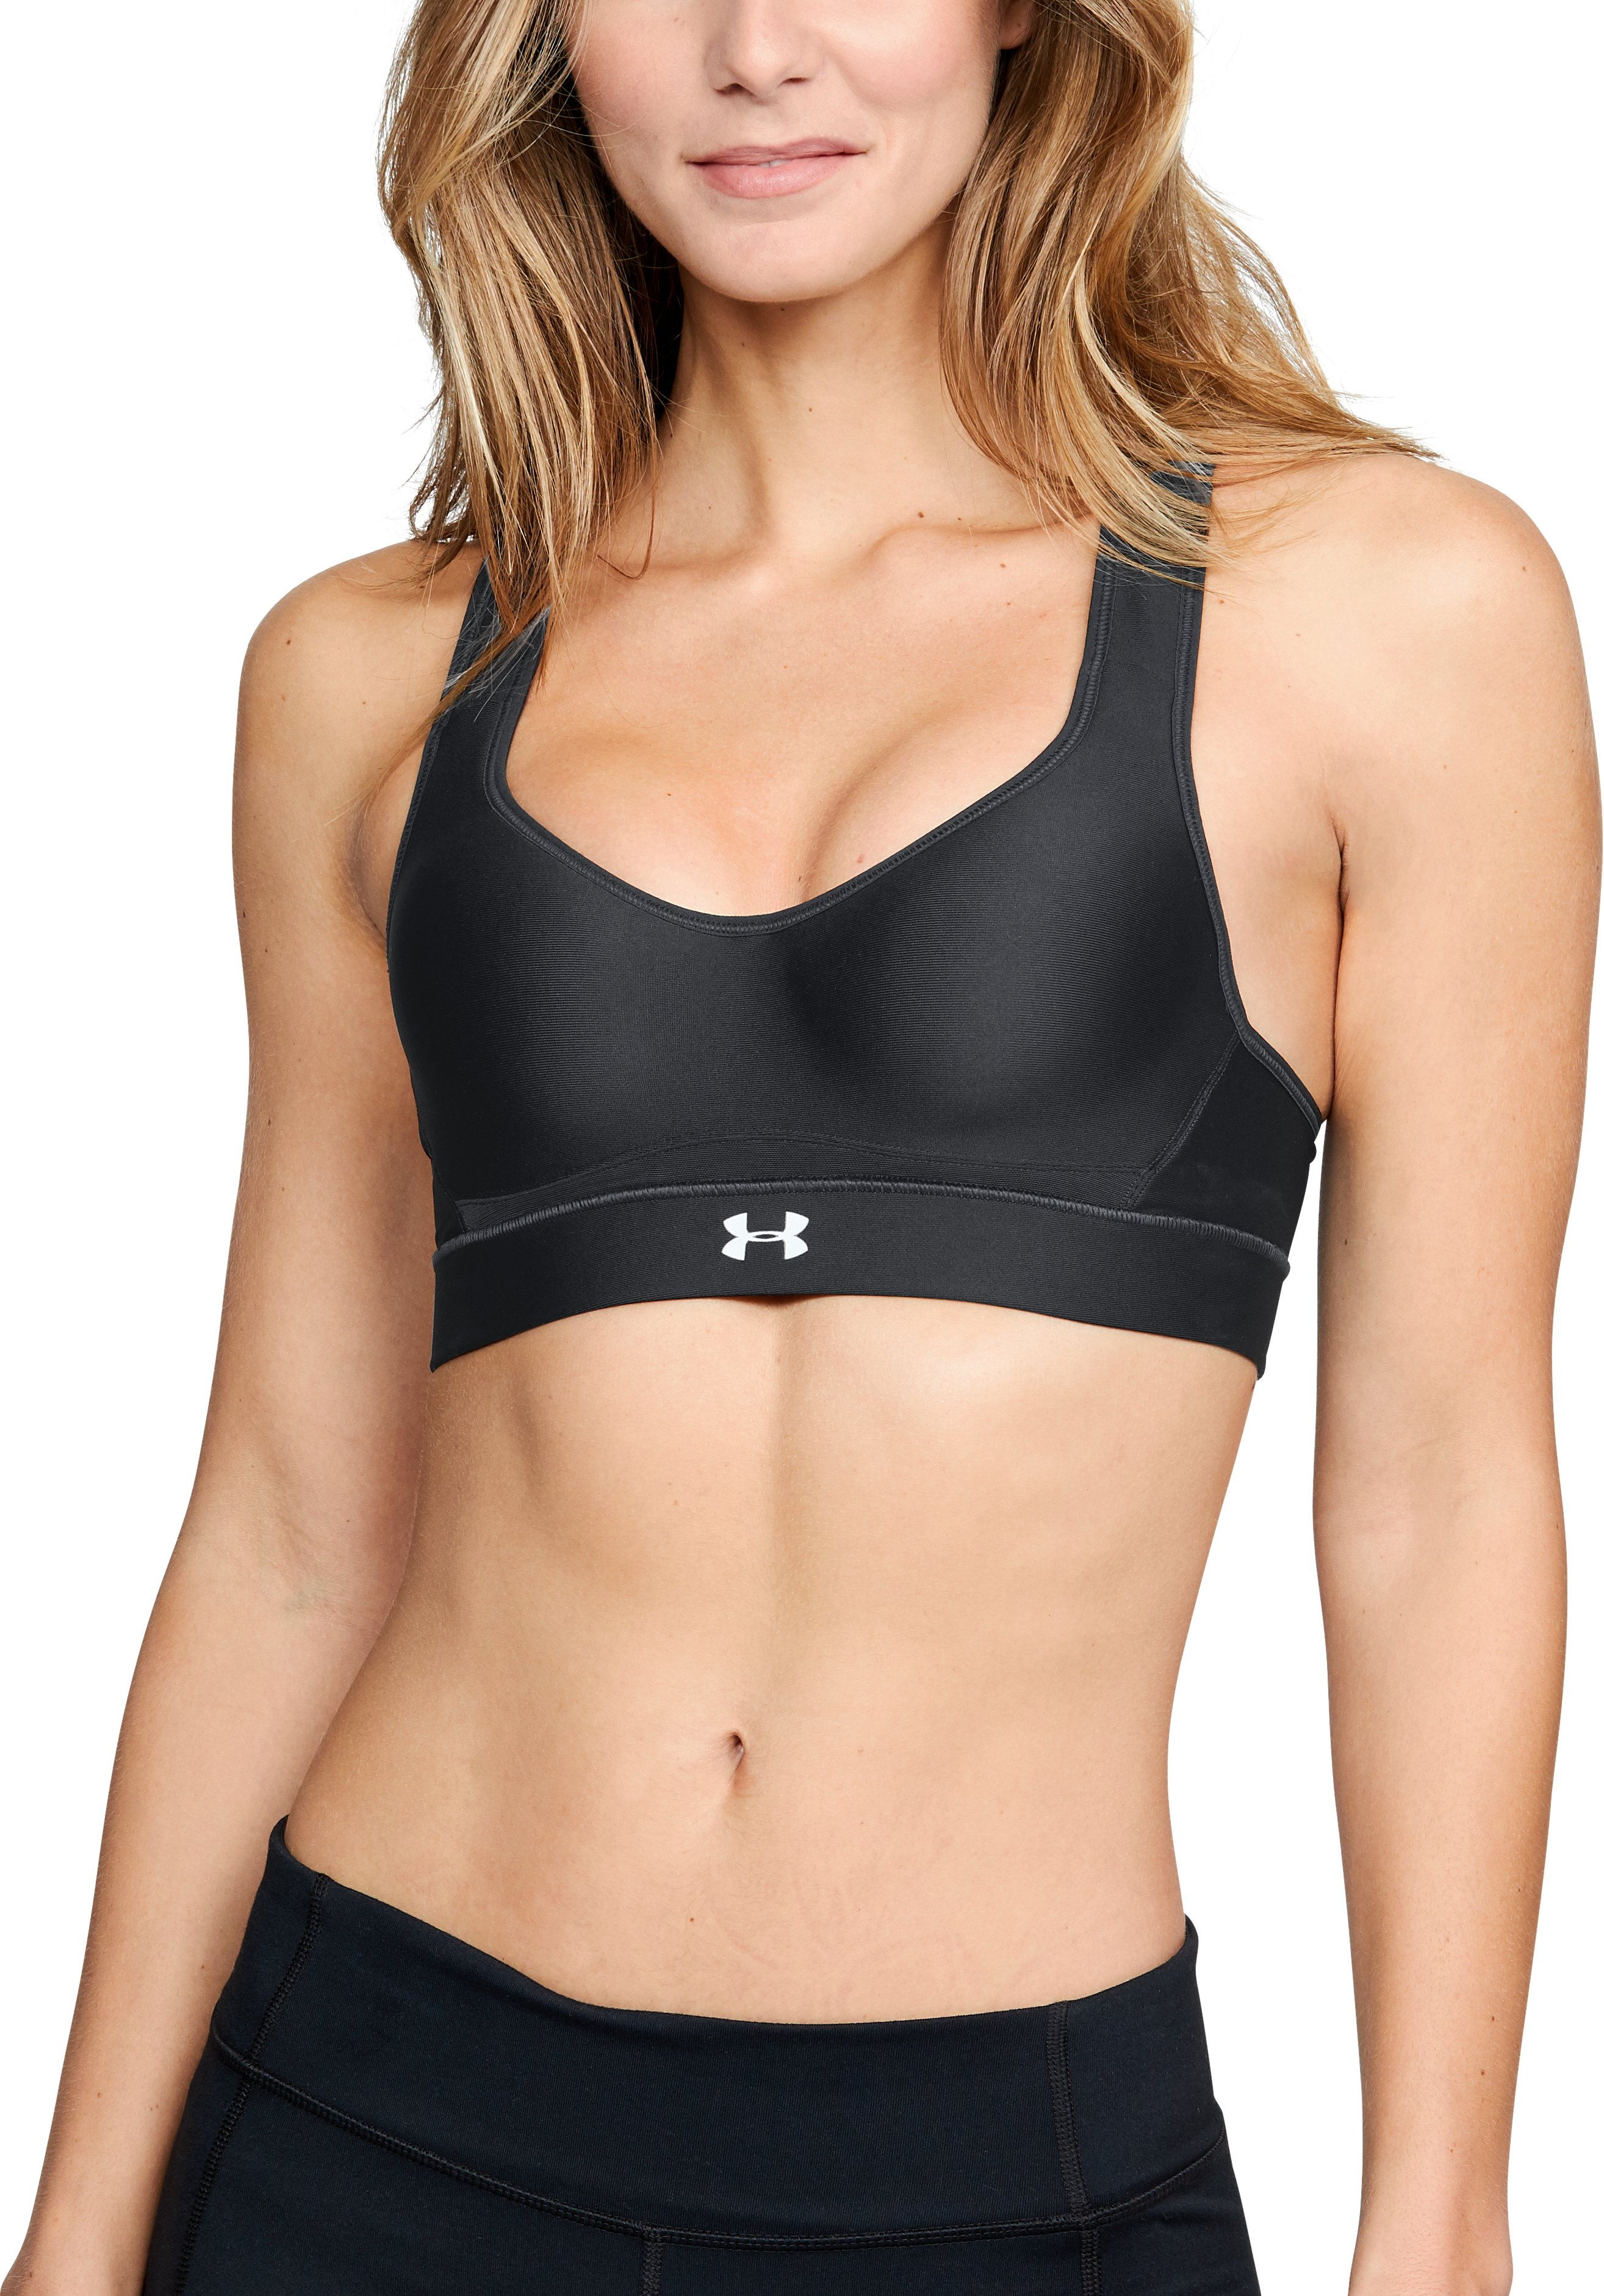 bras for 32b Women's HeatGear Armour® High Support Sports Bra <strong>4-way stretch construction</strong> moves better in every direction